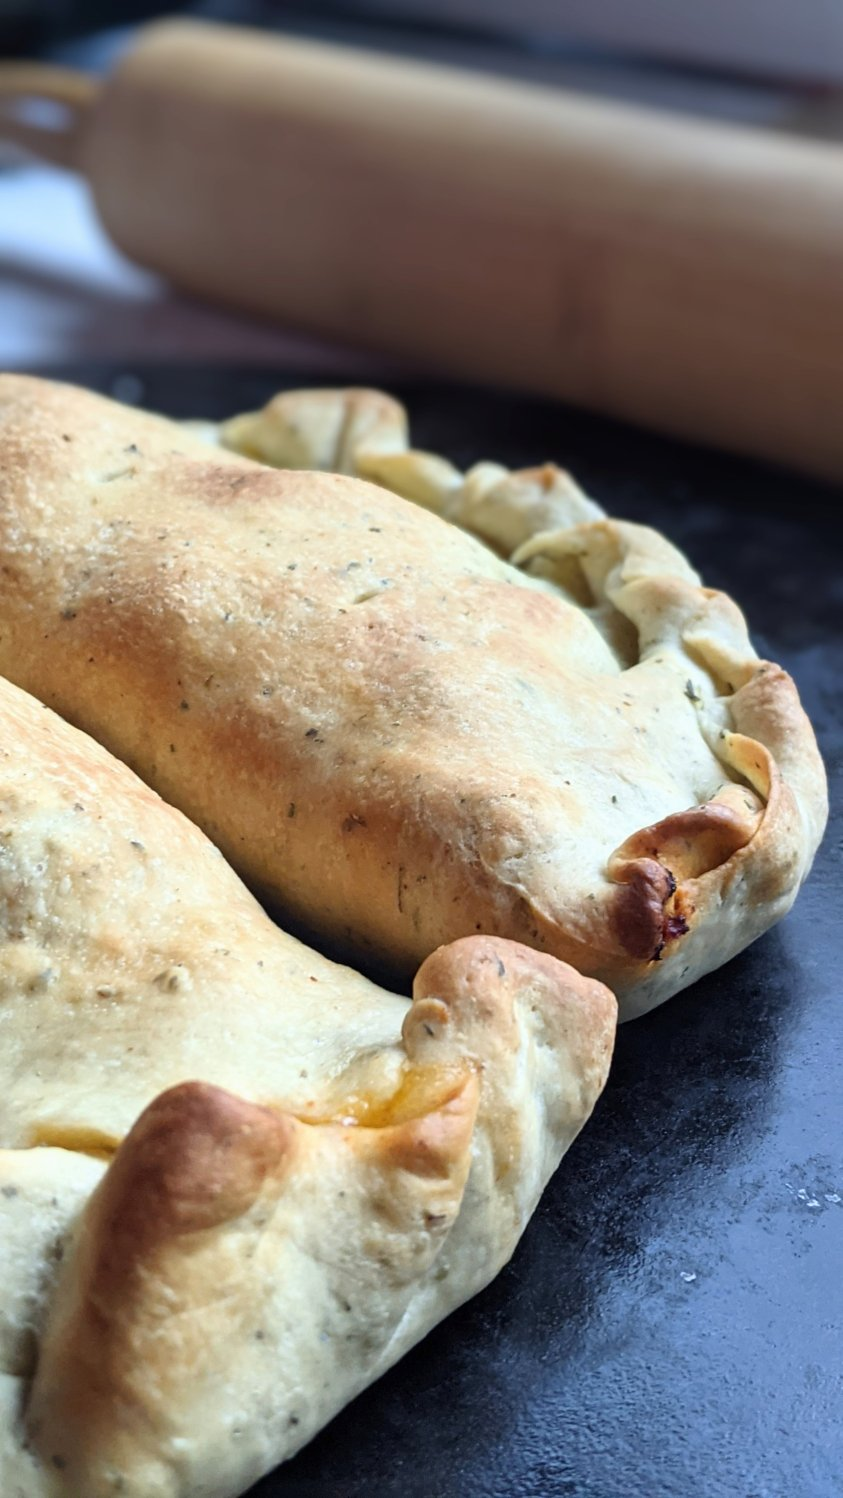 grilled calzone recipe on a pizza stone grilling recipes vegetarian grilling recipes big green egg vegan and gluten free recipes